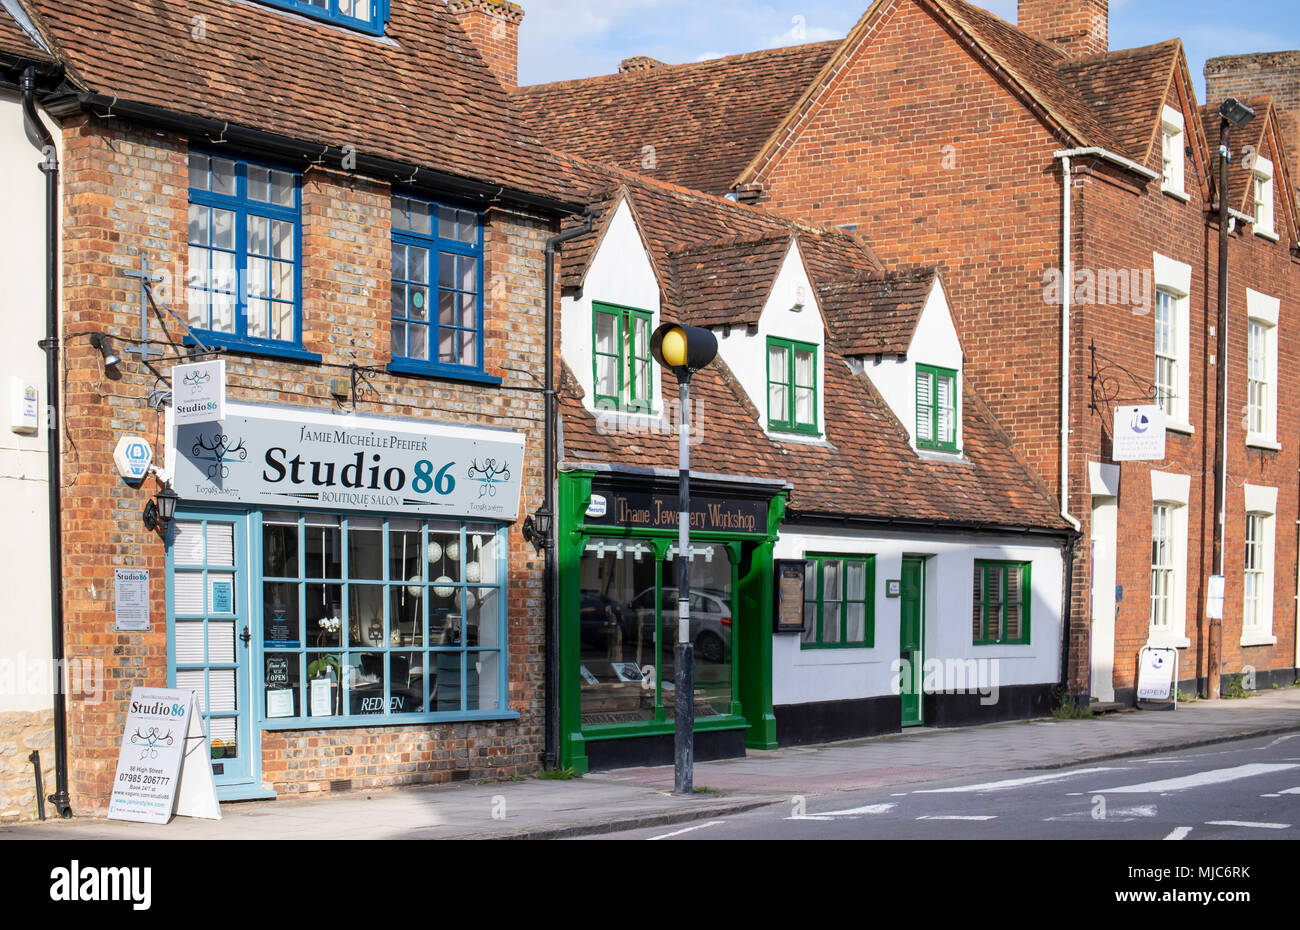 Thame, Oxfordshire medieval English market town streets and buildings - Stock Image